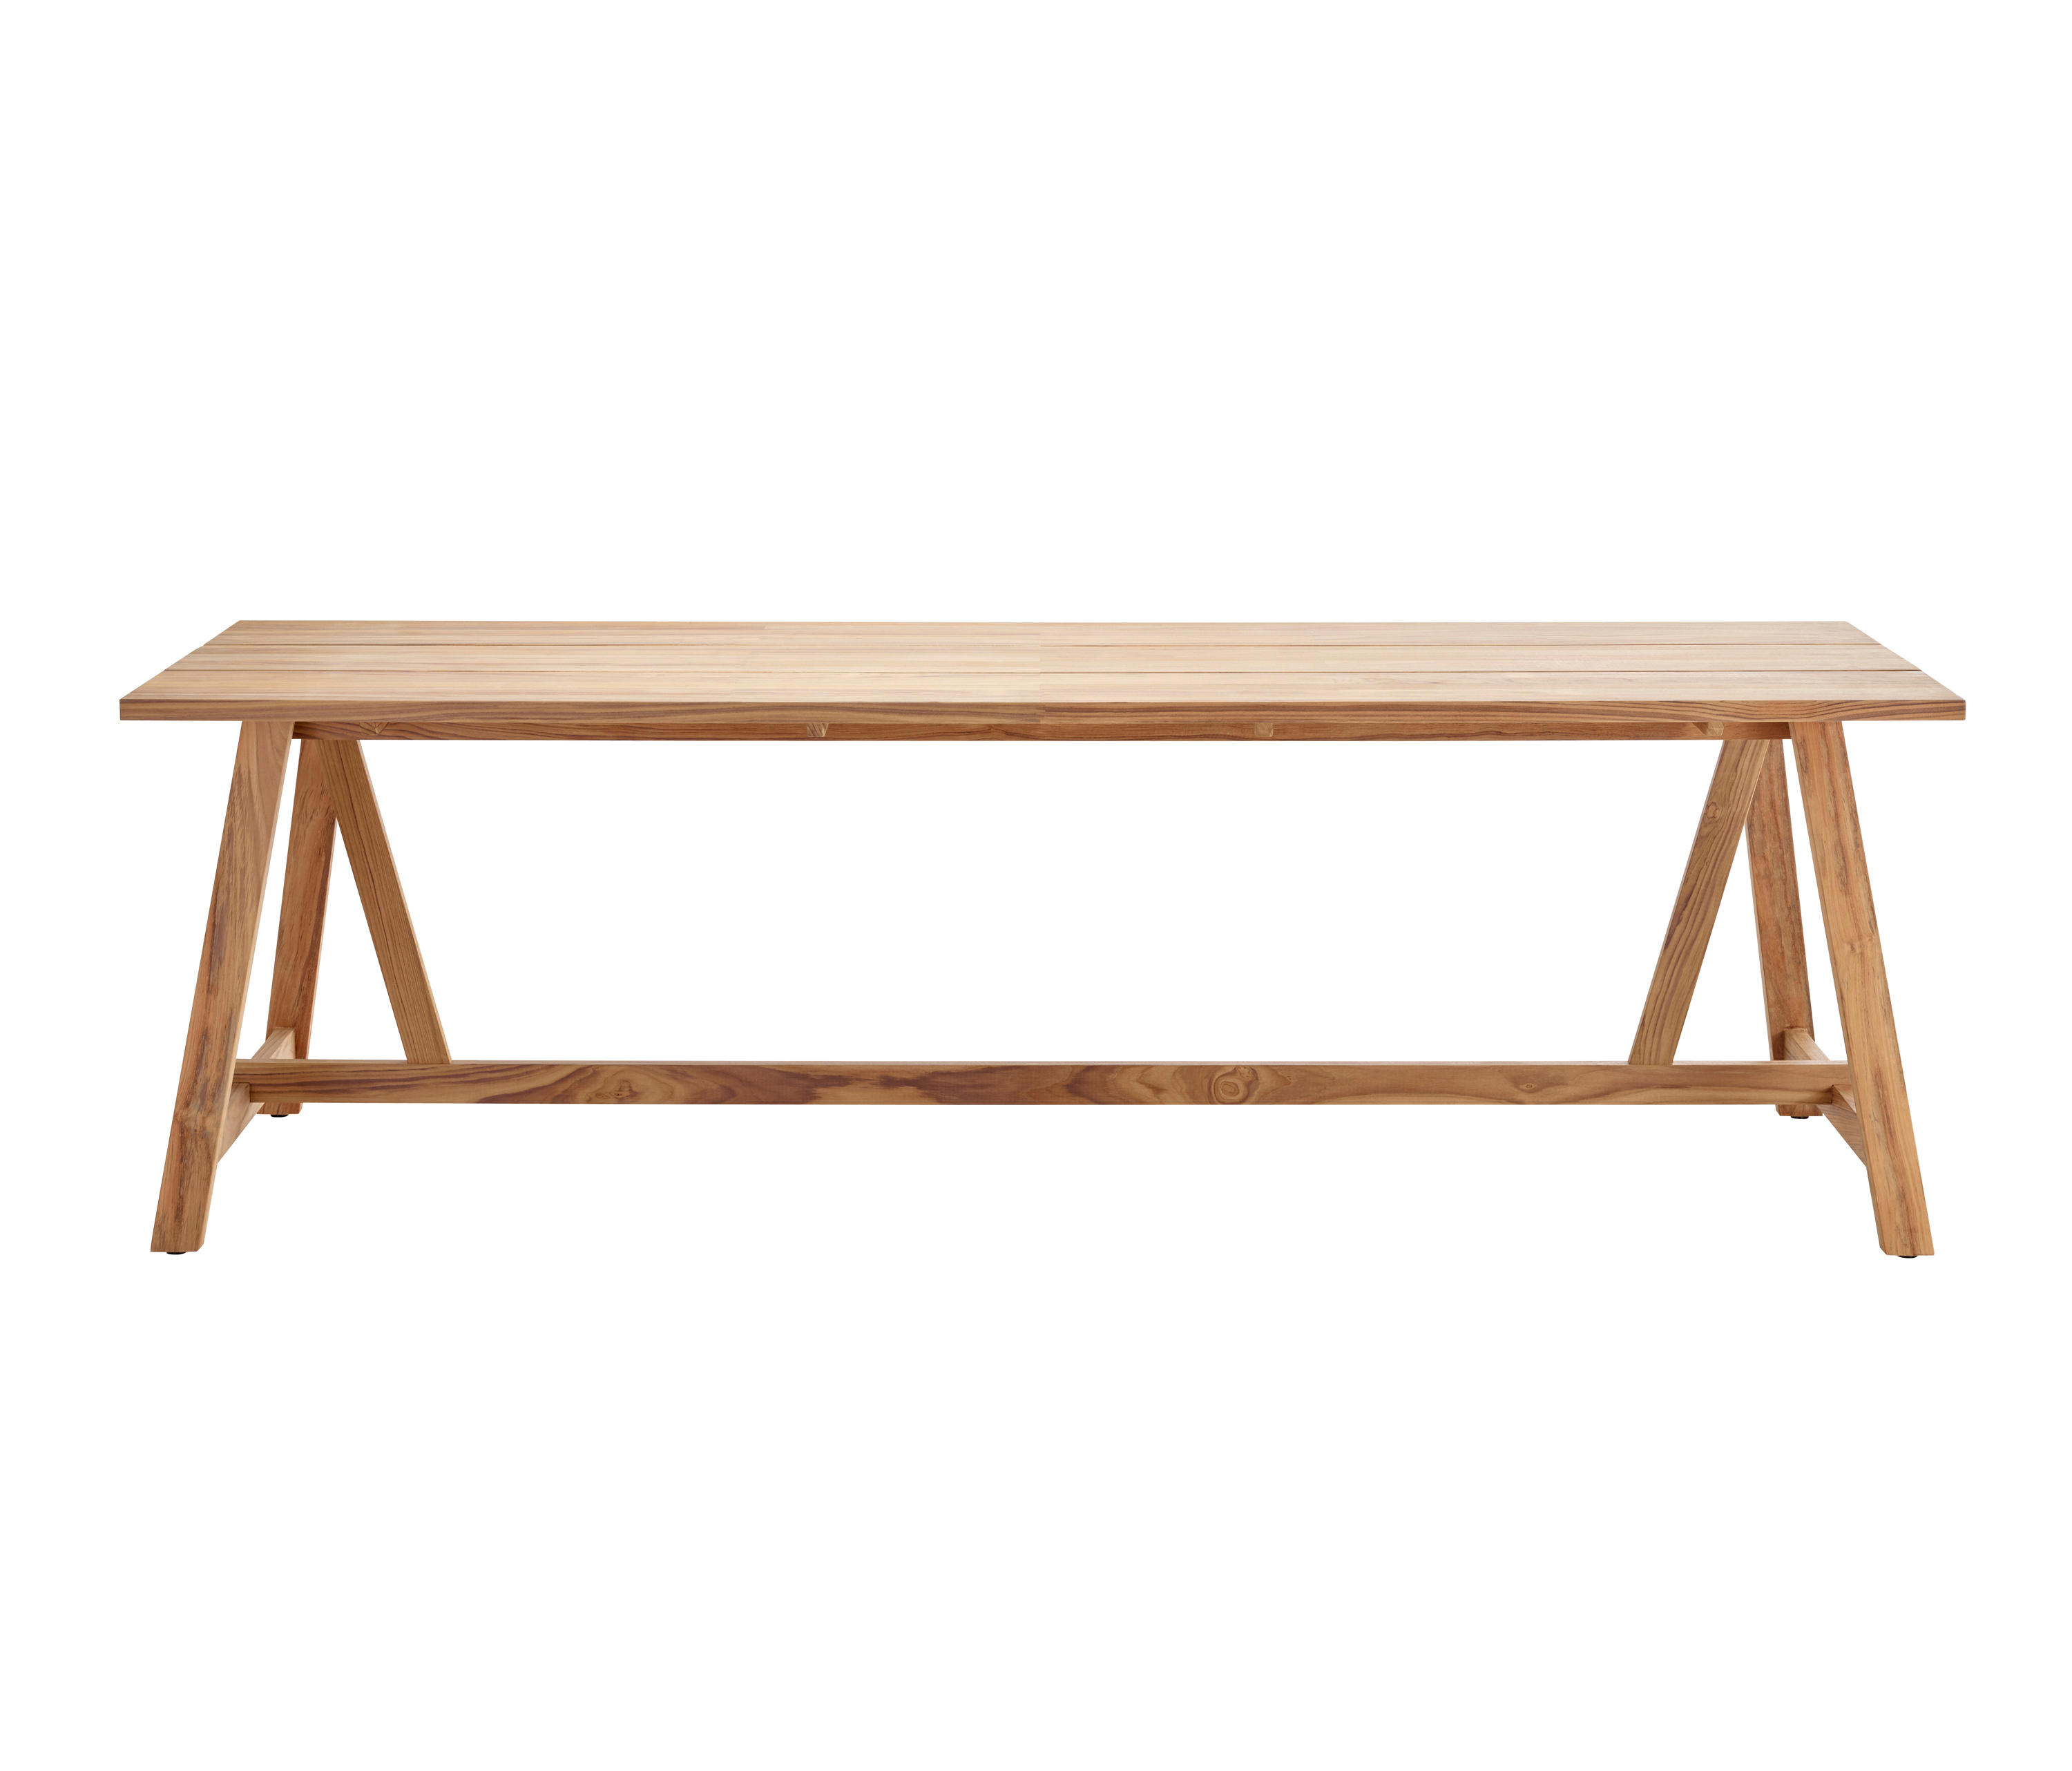 Admirable Country Dining Table Dining Tables From Solpuri Architonic Gamerscity Chair Design For Home Gamerscityorg